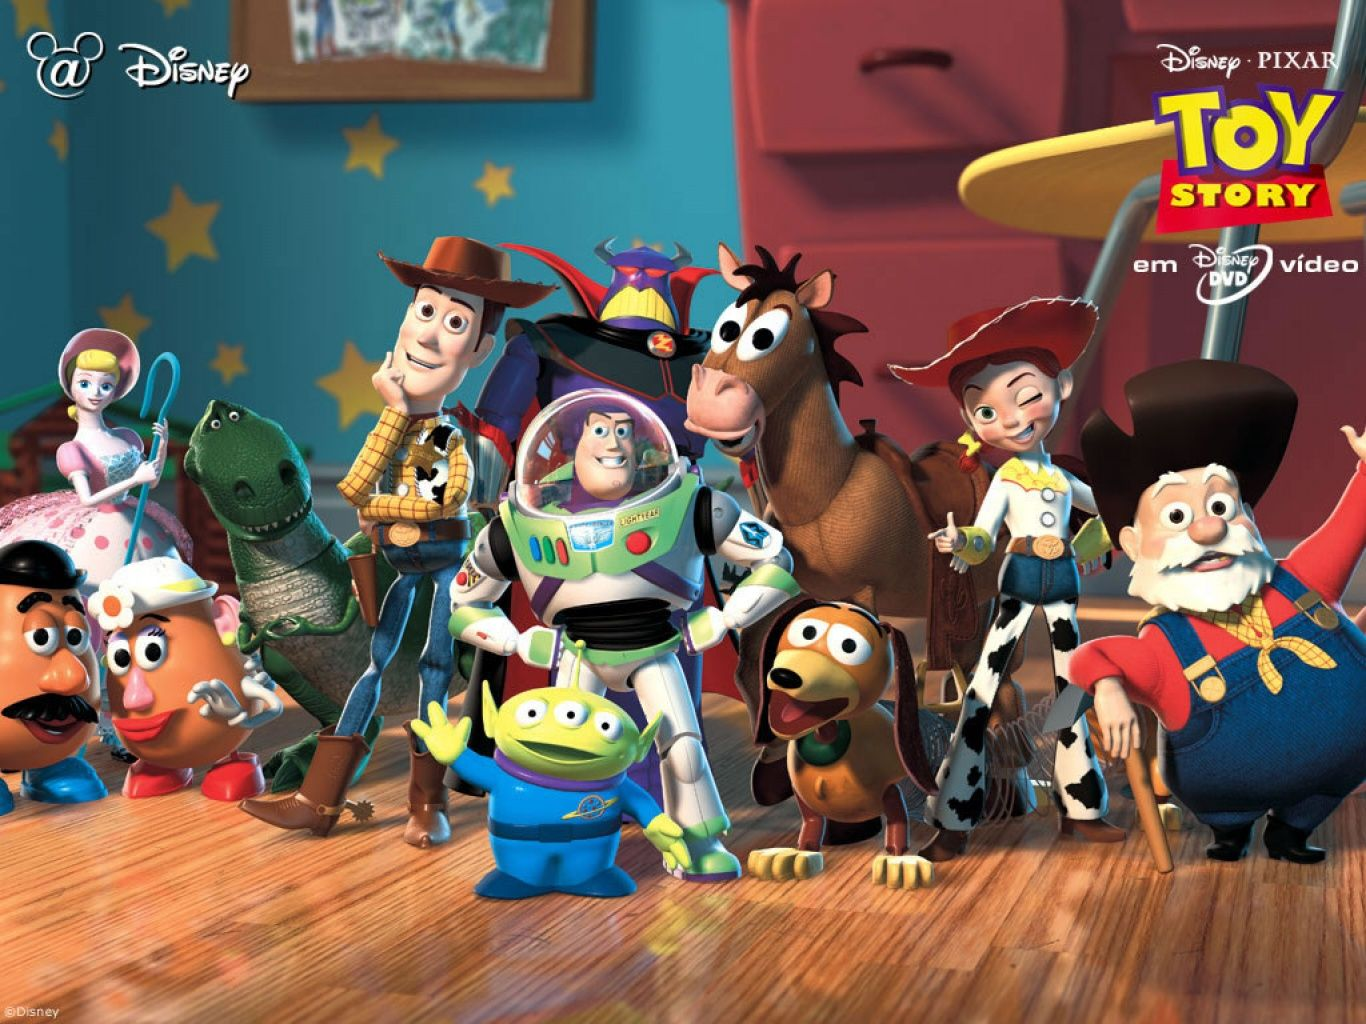 Cute Wallpapers: Toy Story Wallpapers